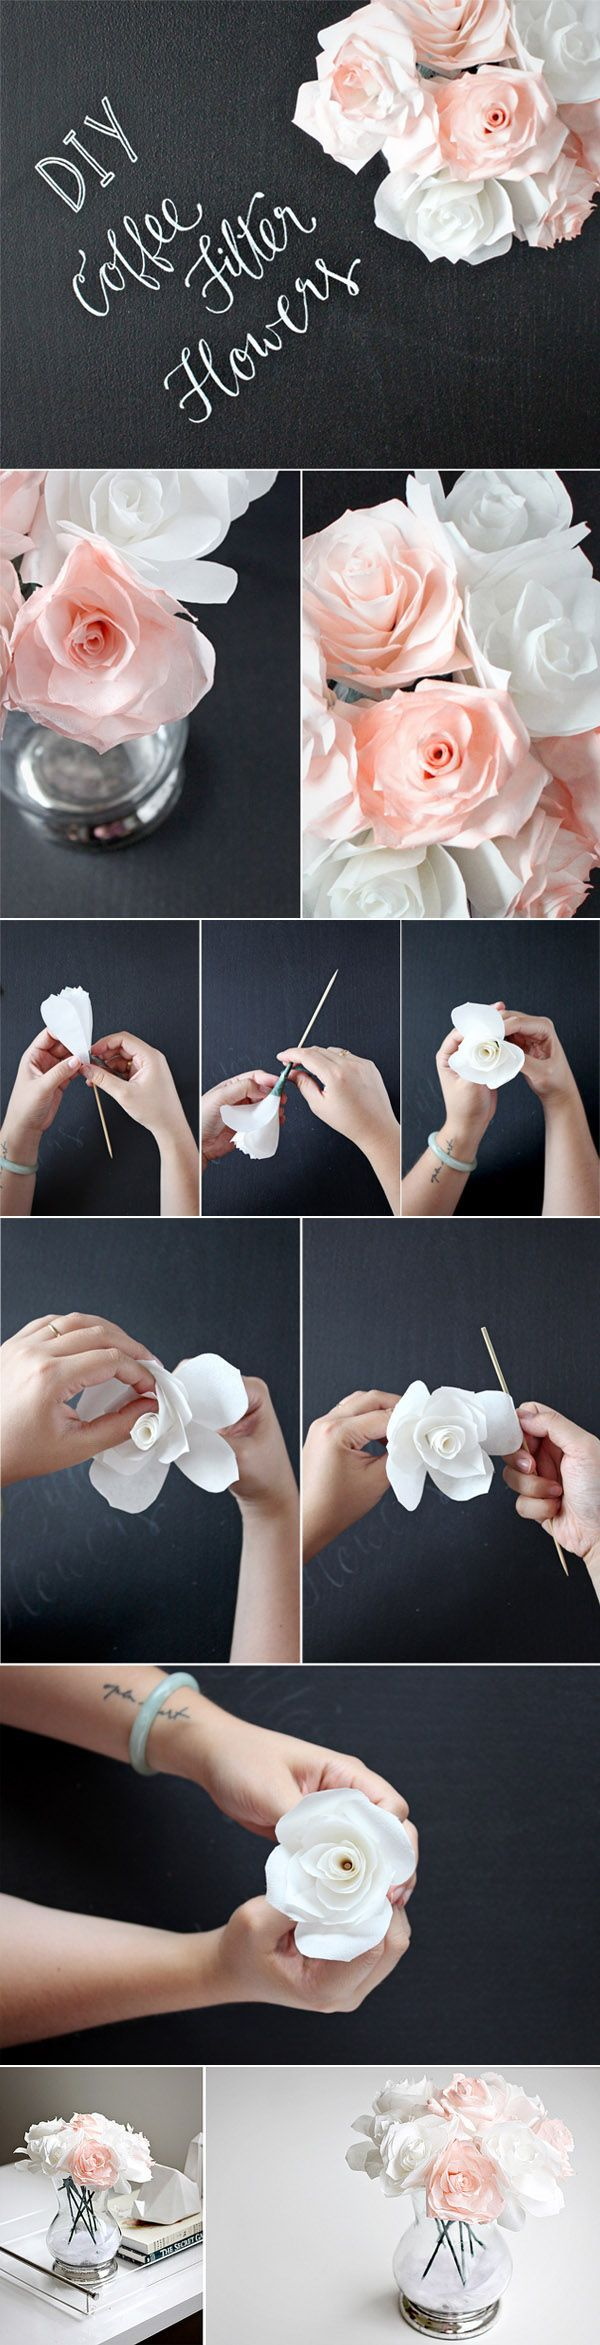 diy wedding centerpieces ideas with coffee filter flowers #diy #flowers #inspiration